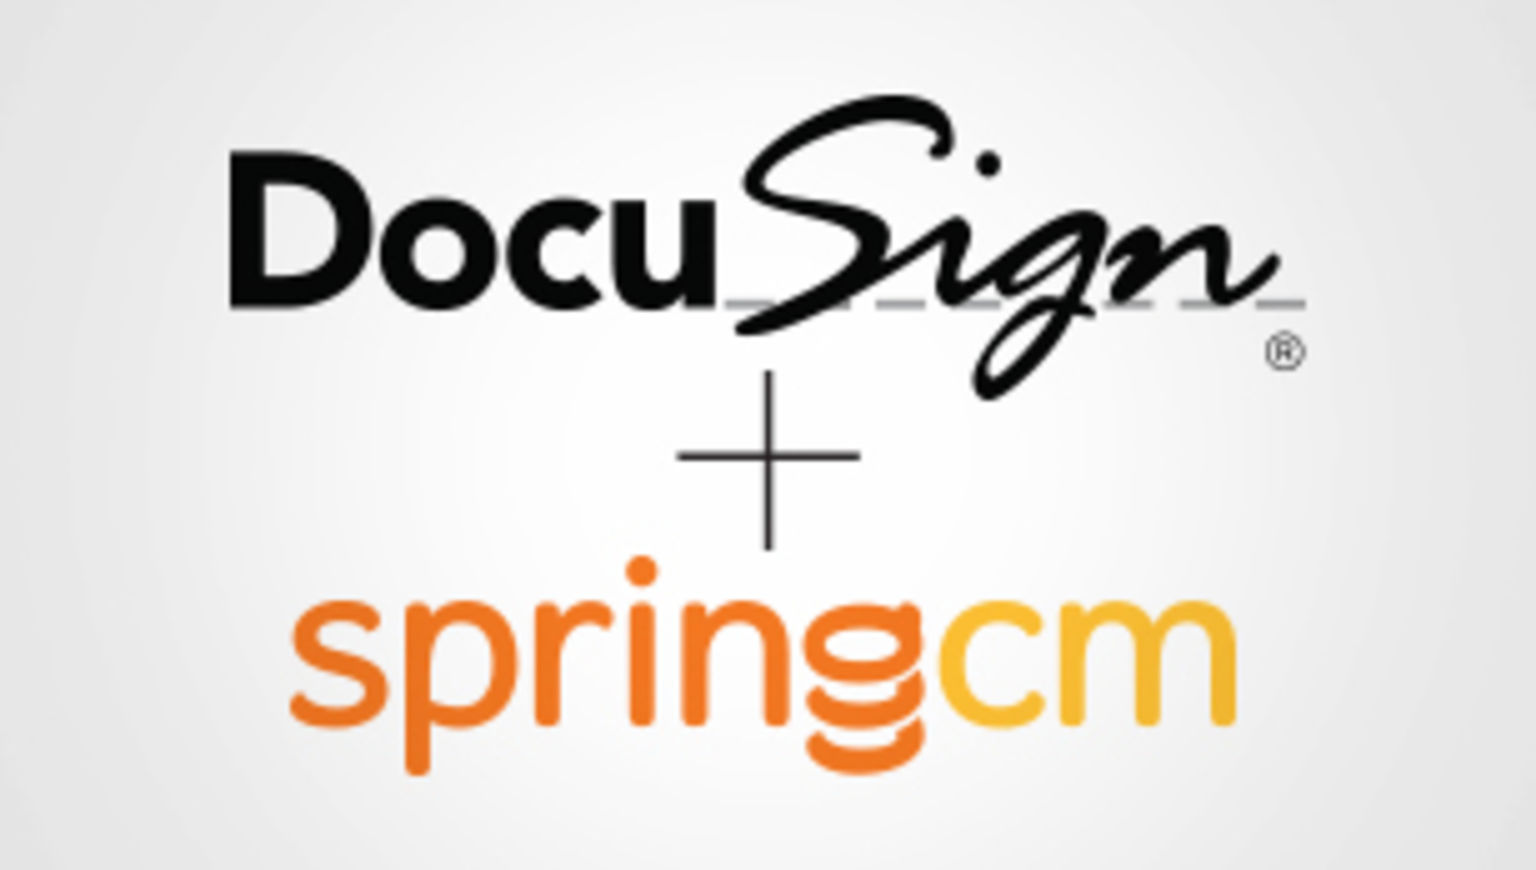 DocuSign to acquire SpringCM